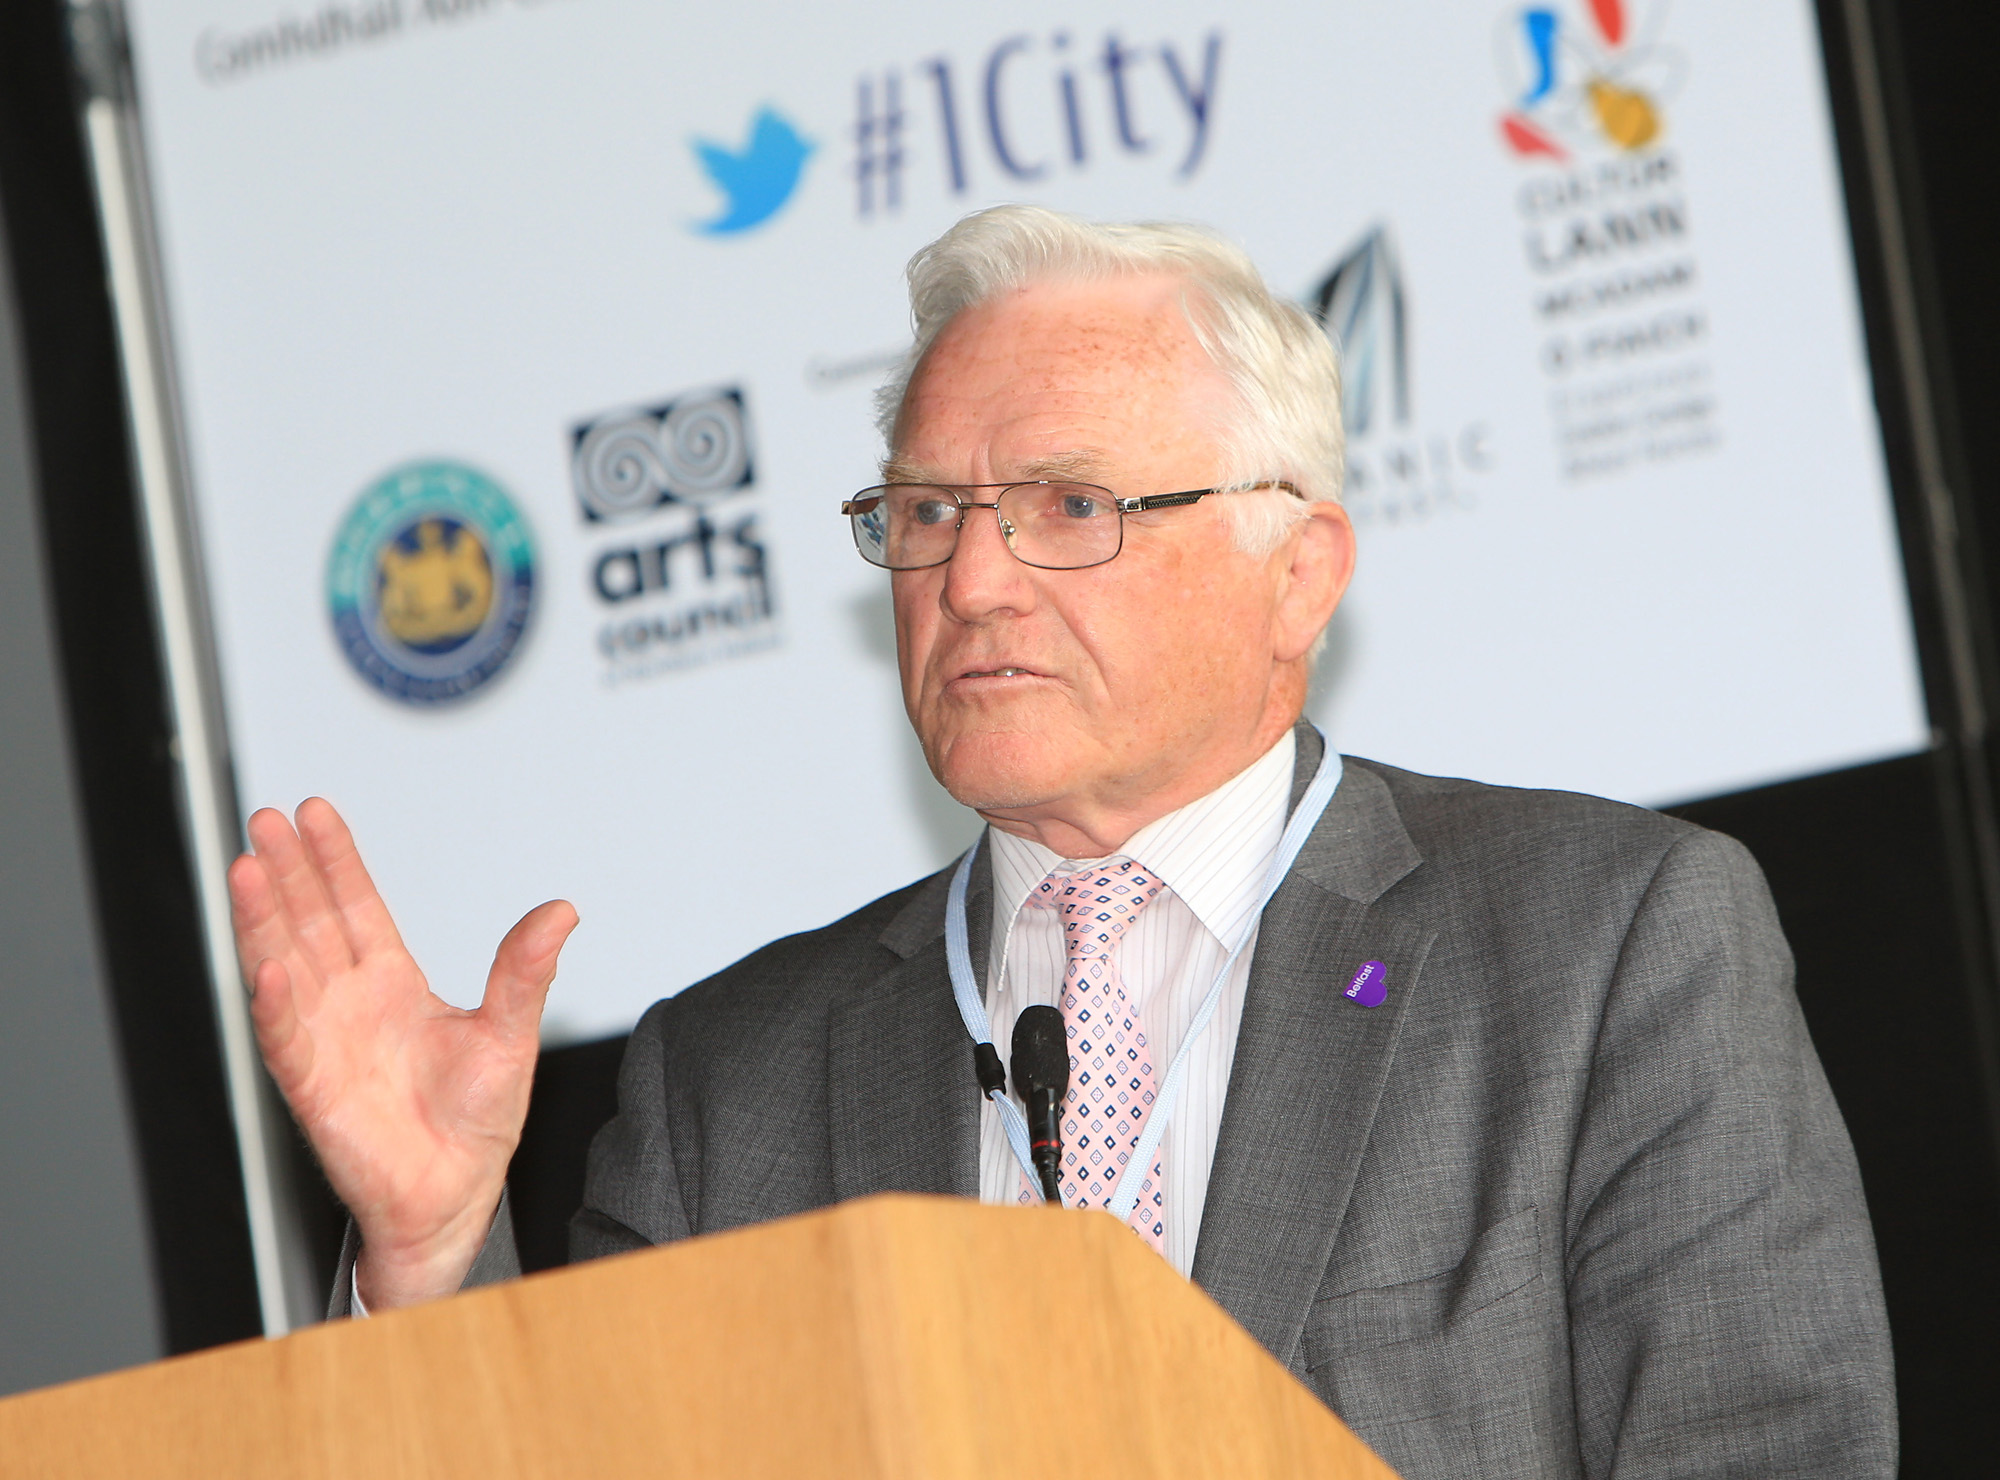 Belfast MET E3, One City Conference 'Lifting the City' . pictured: Alderman Tom Ekin 95JC13